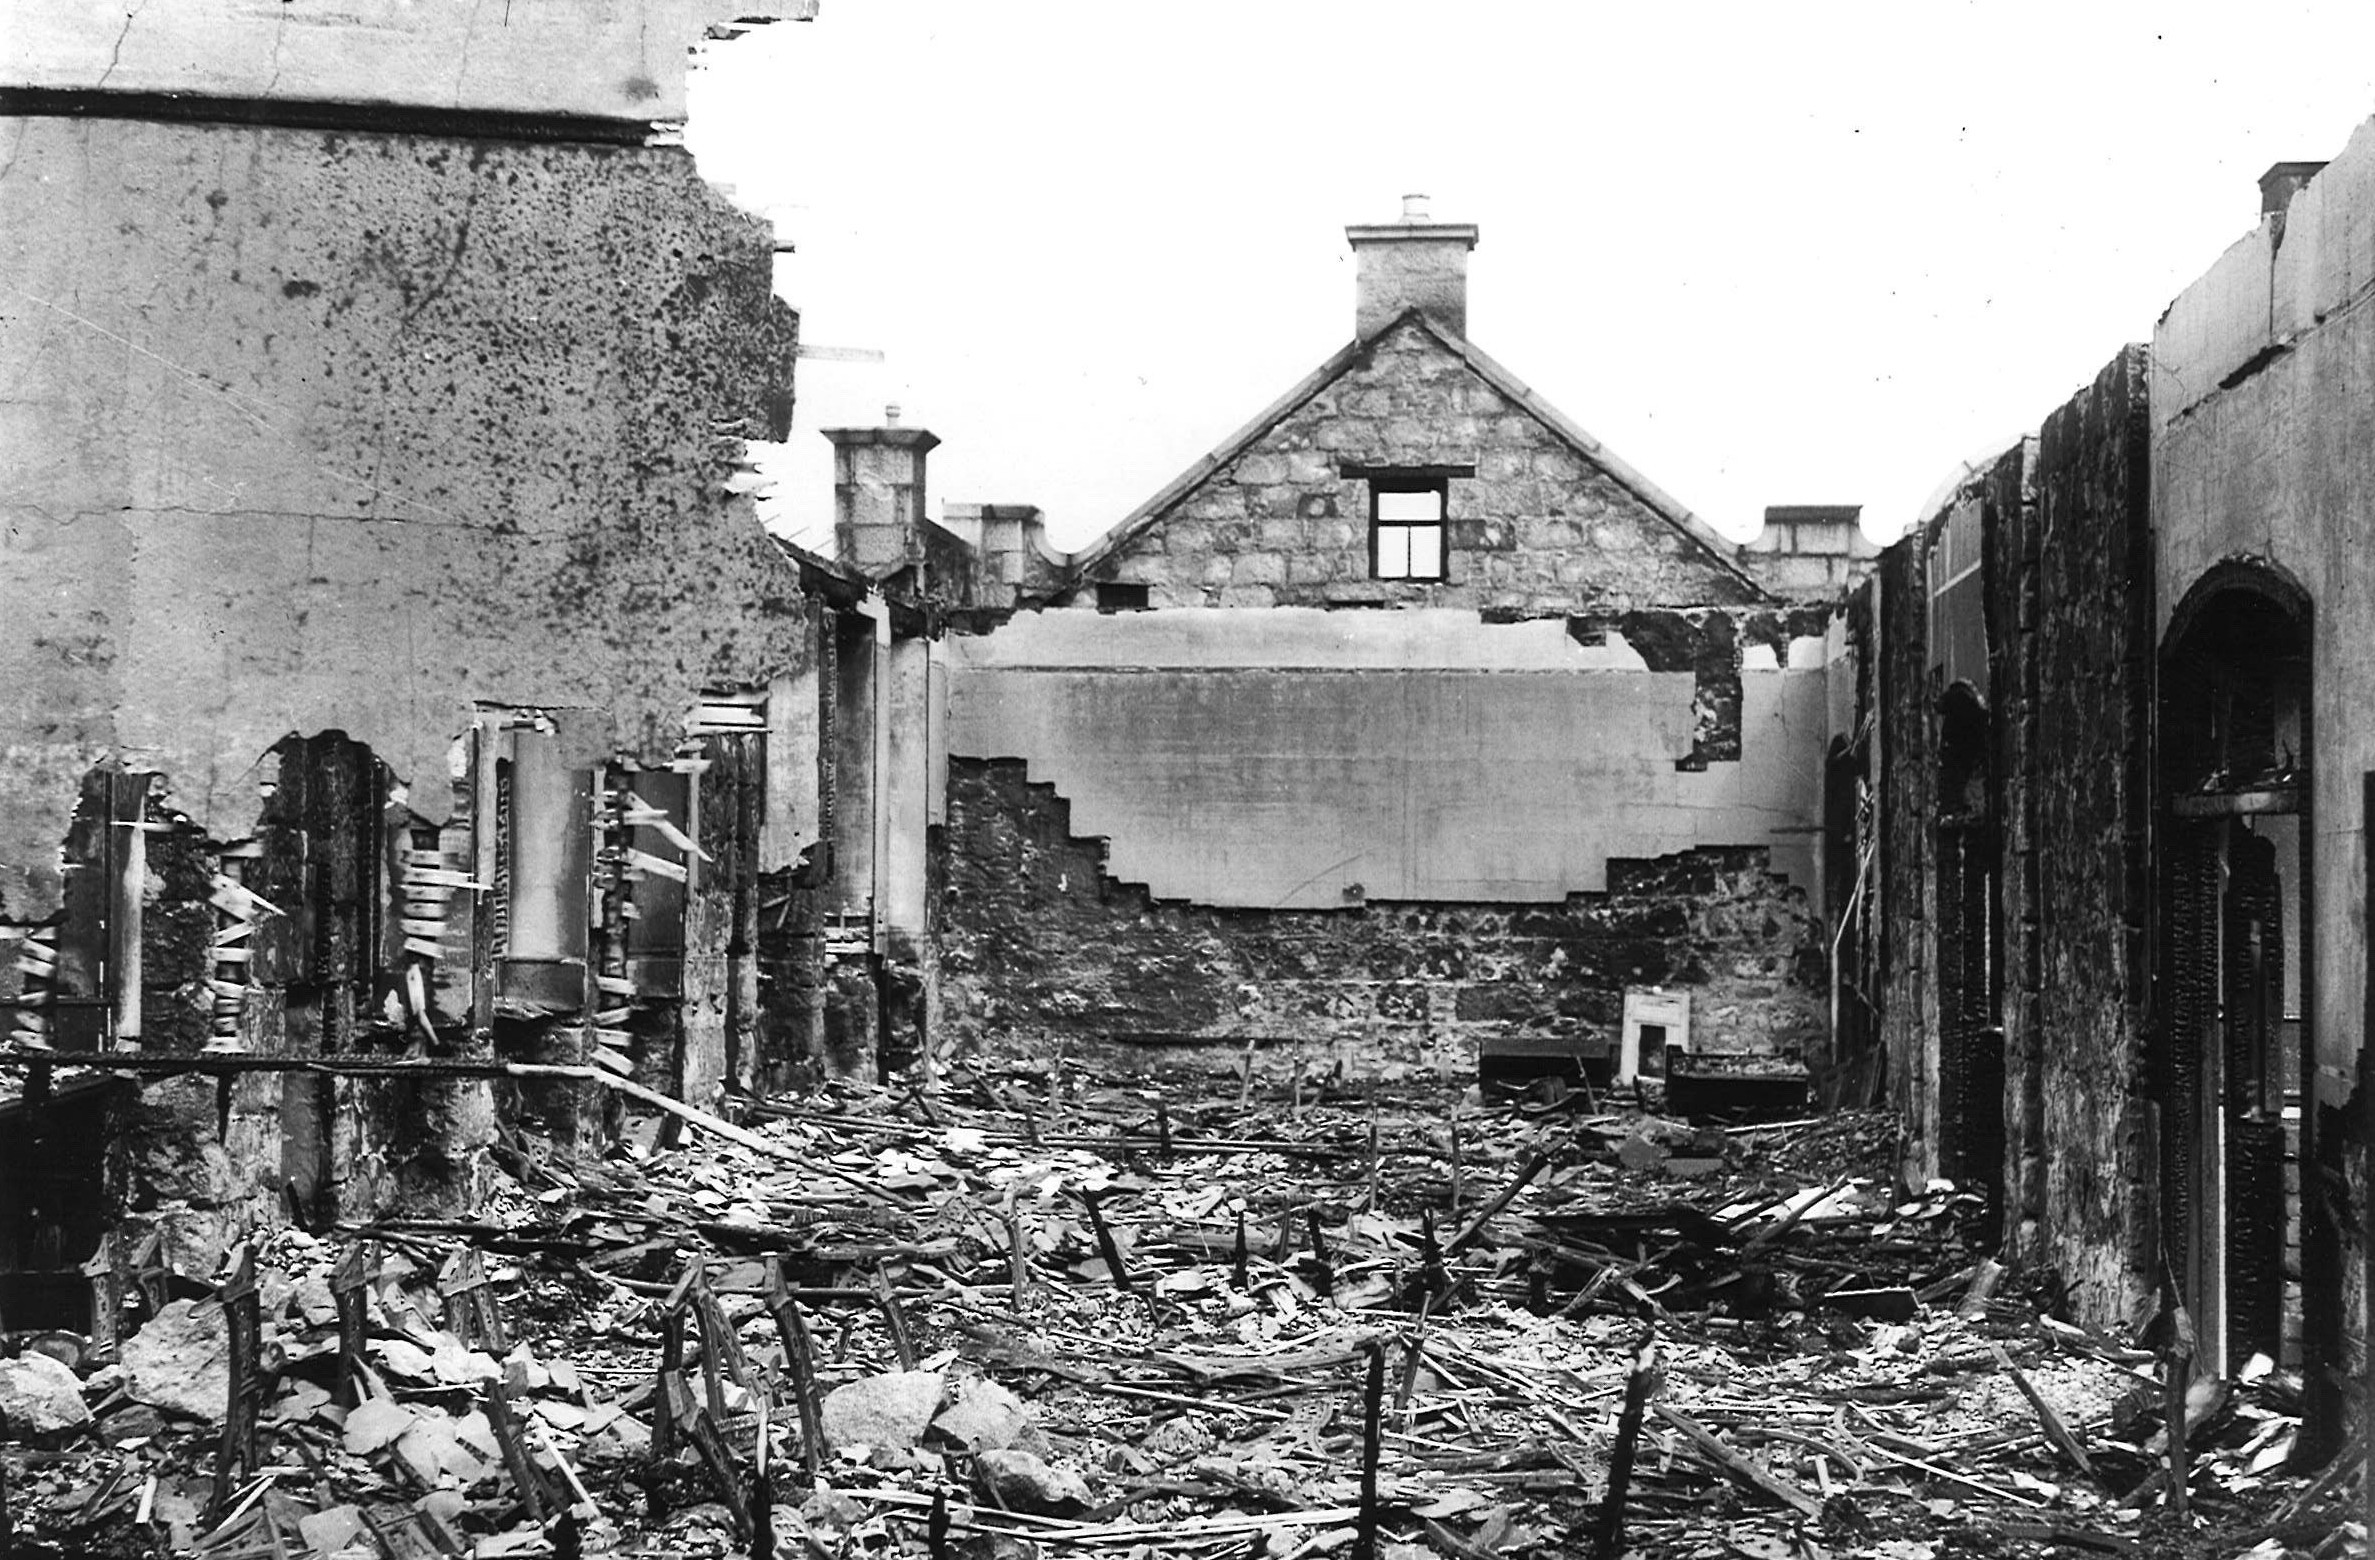 Victoria Road School after an air raid, July 1940